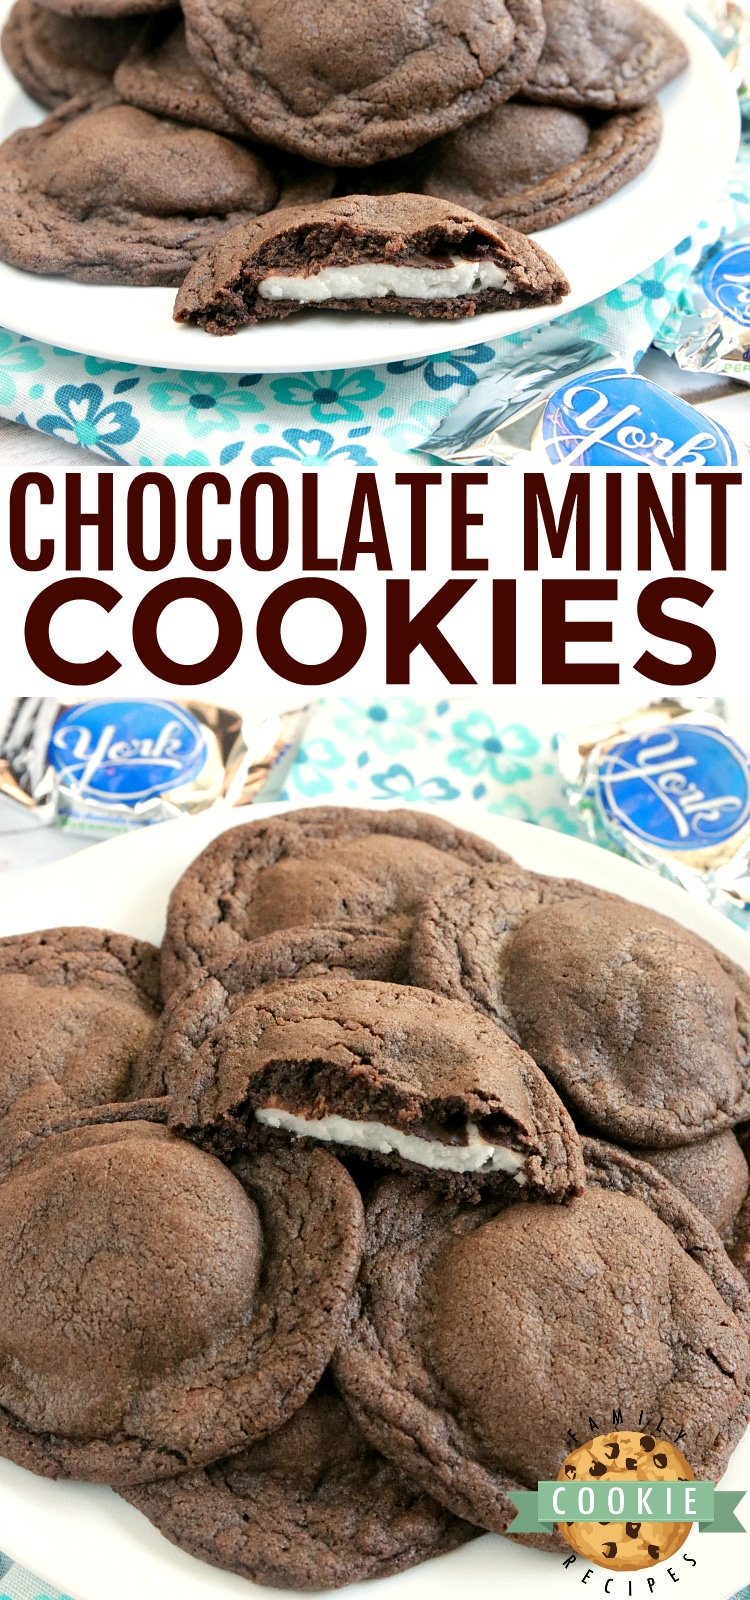 Chocolate Mint Cookies are soft and chewy chocolate cookies that have a York peppermint patty right in the middle. This easy cookie recipe is the perfect balance of chocolate and mint! via @familycookierecipes